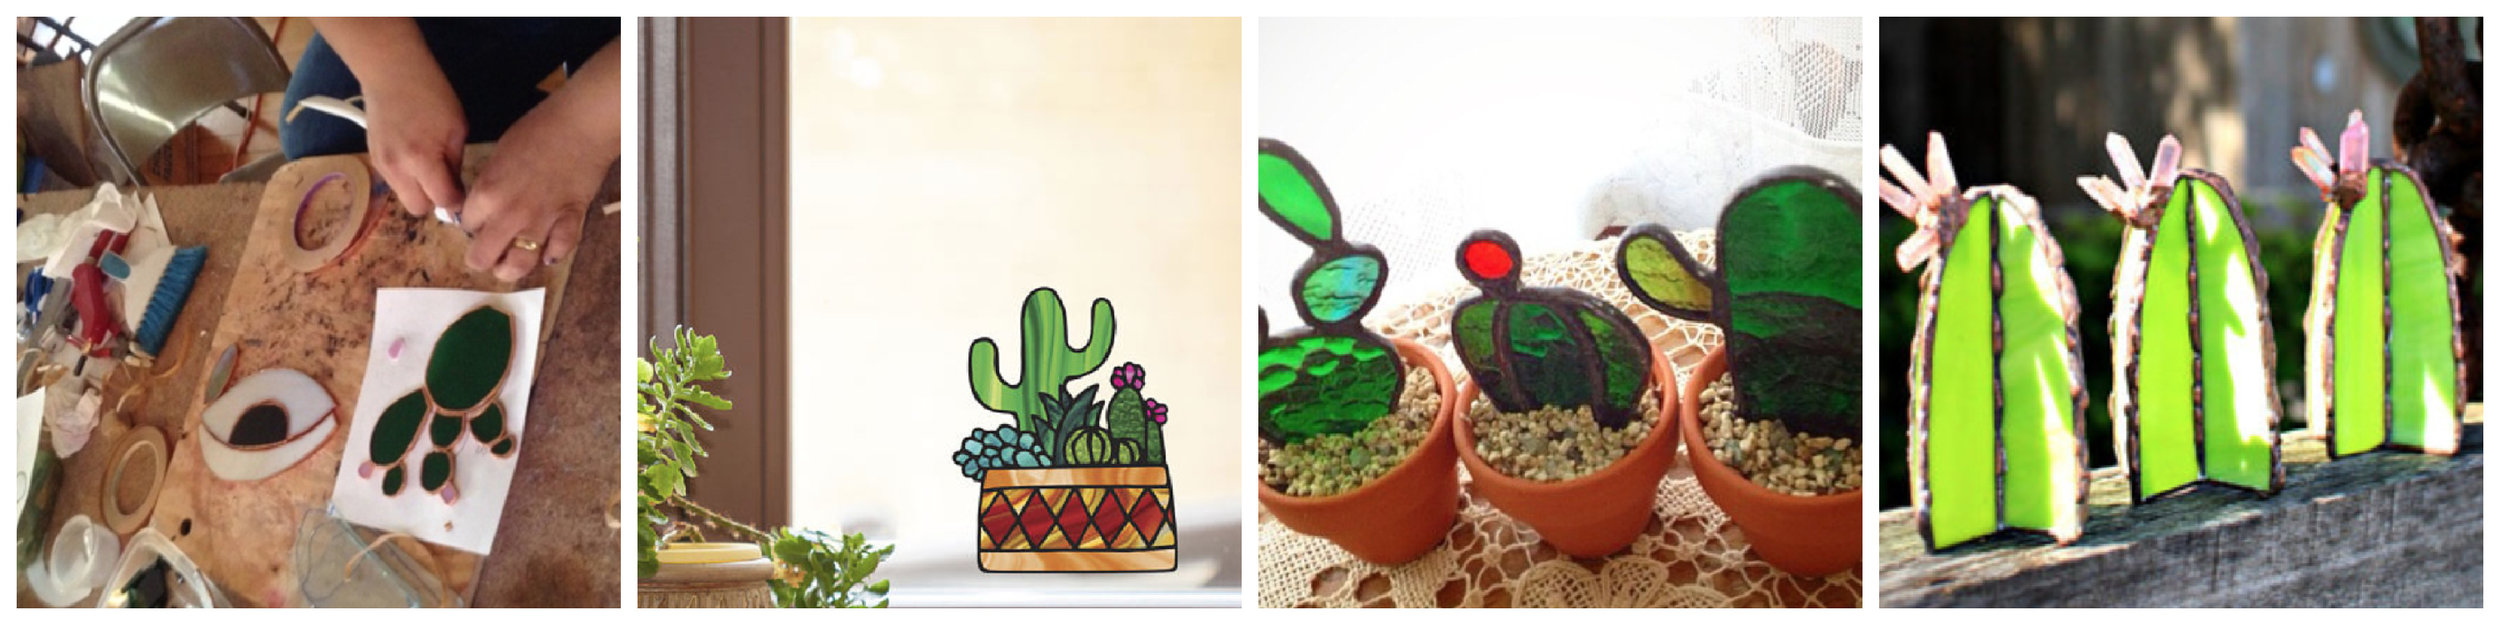 cacti collage.jpg